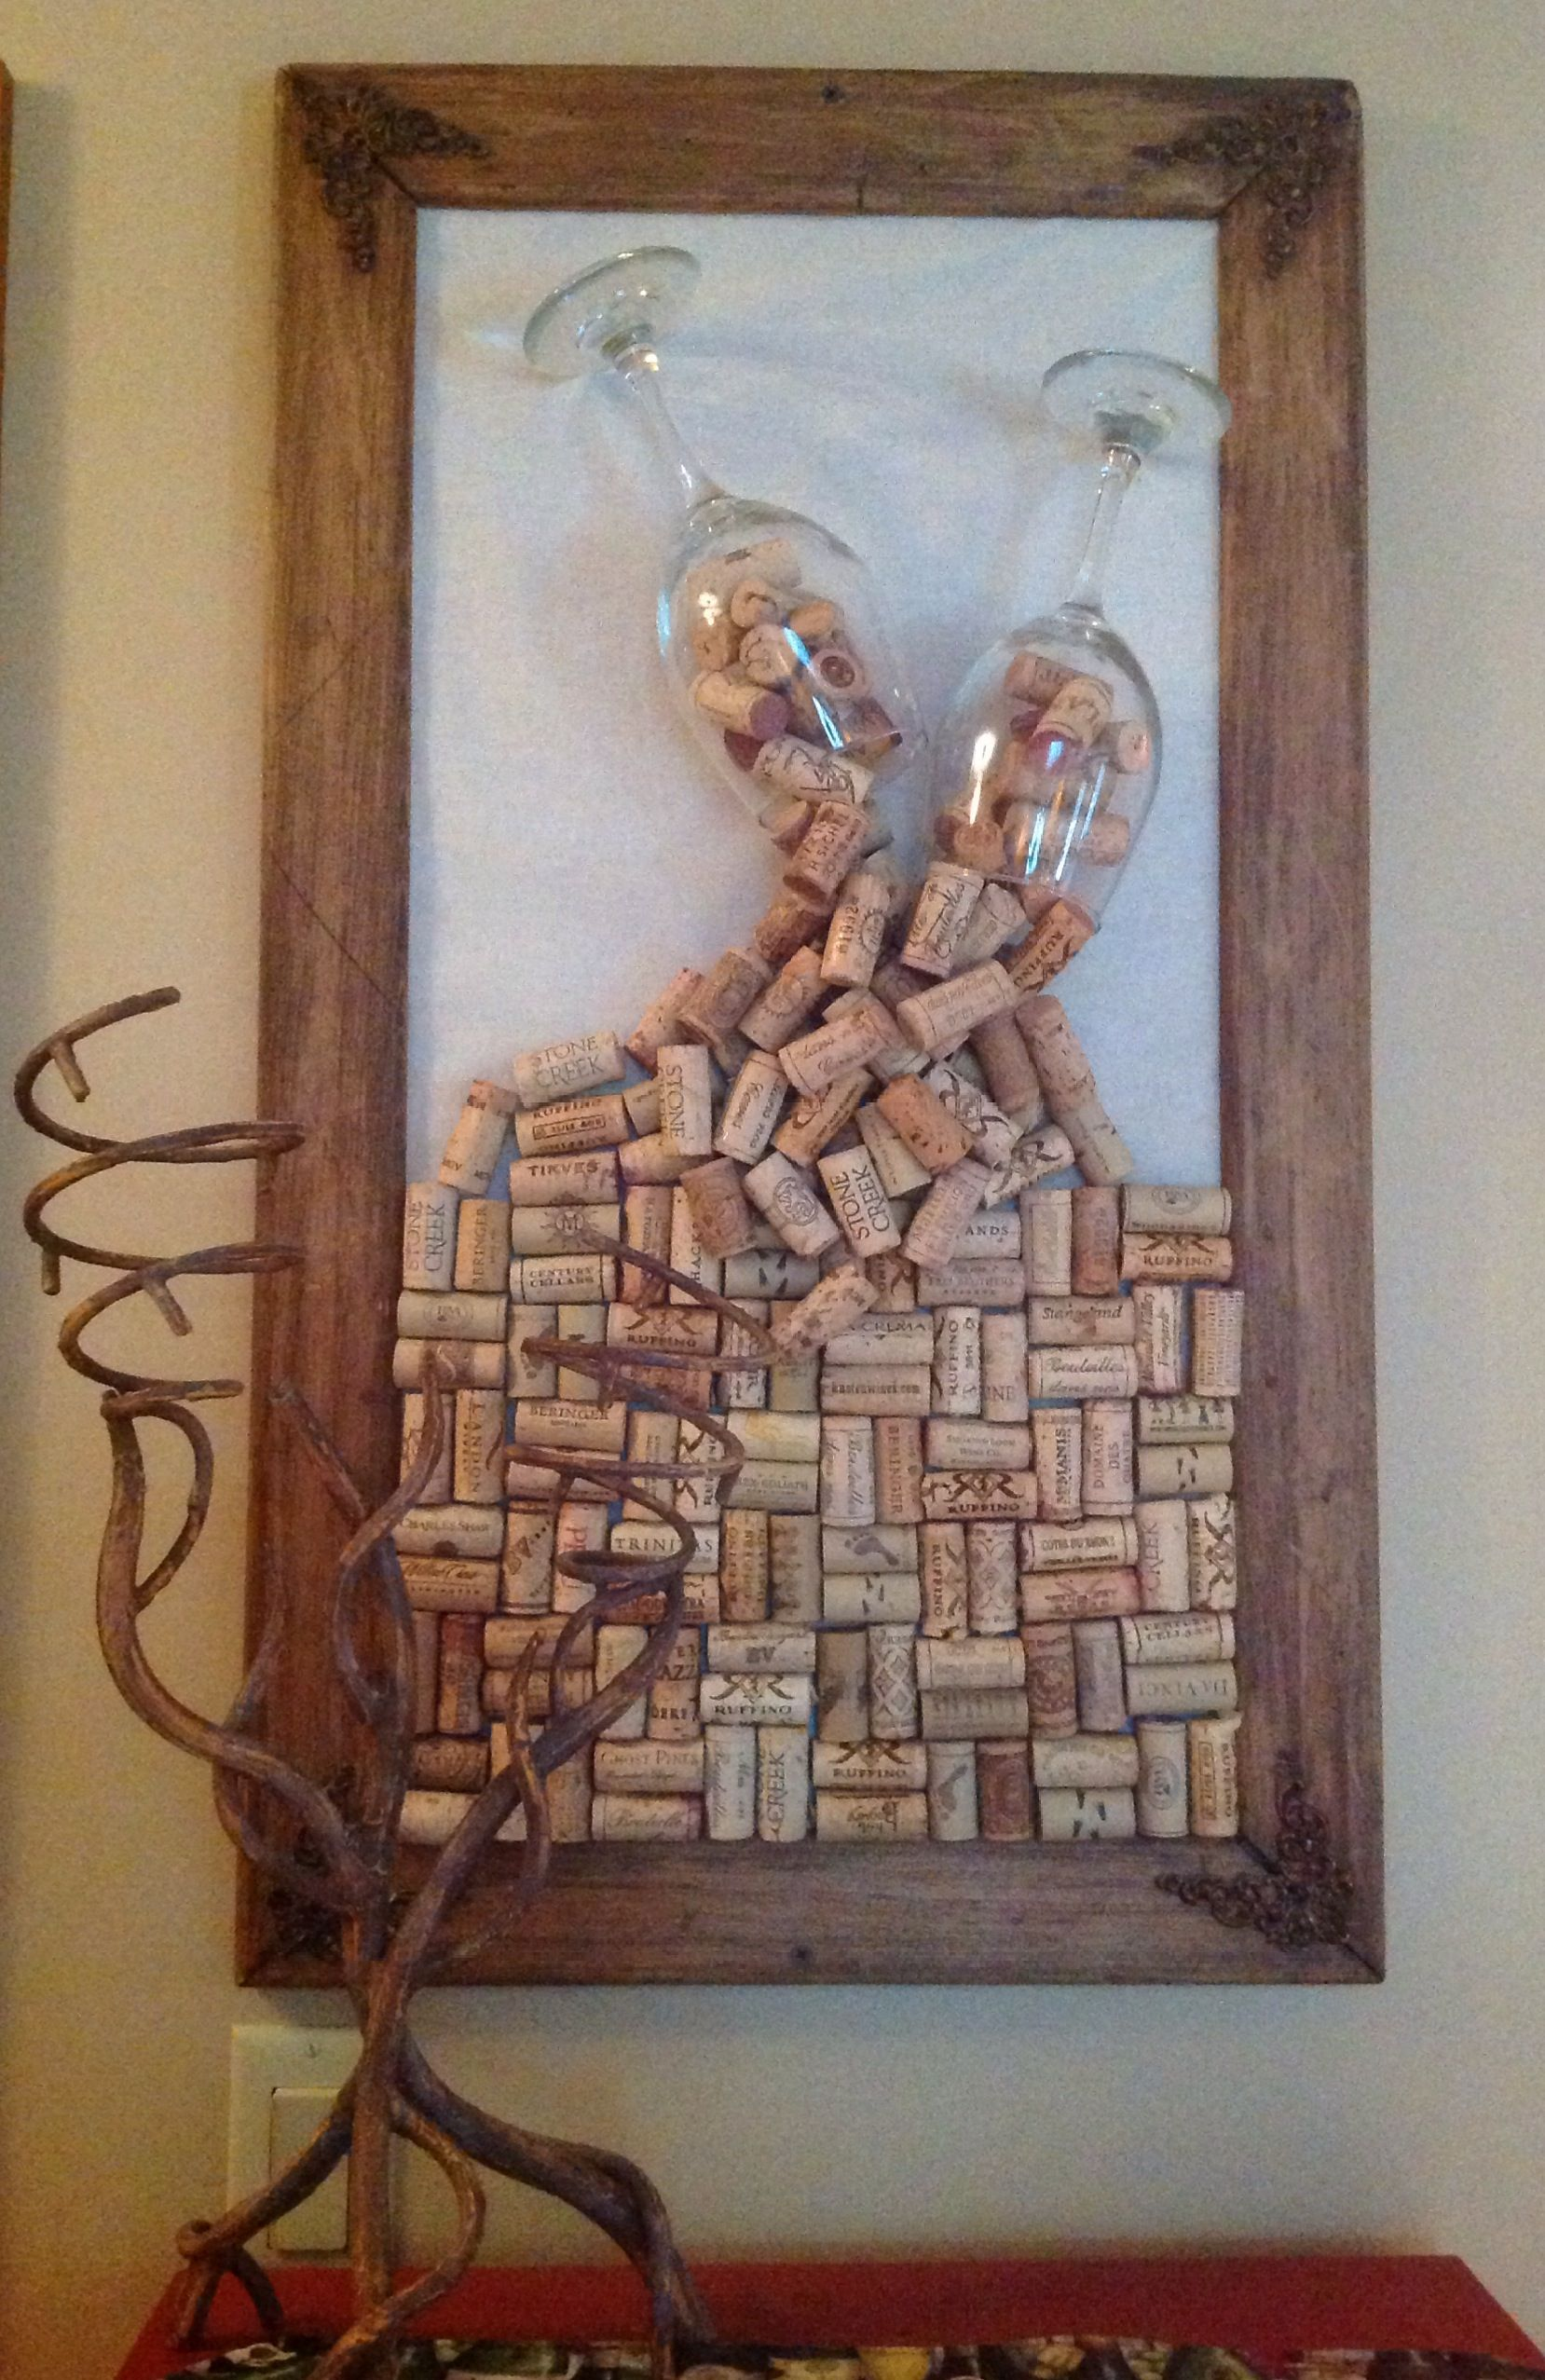 Home made cork board made with collected corks